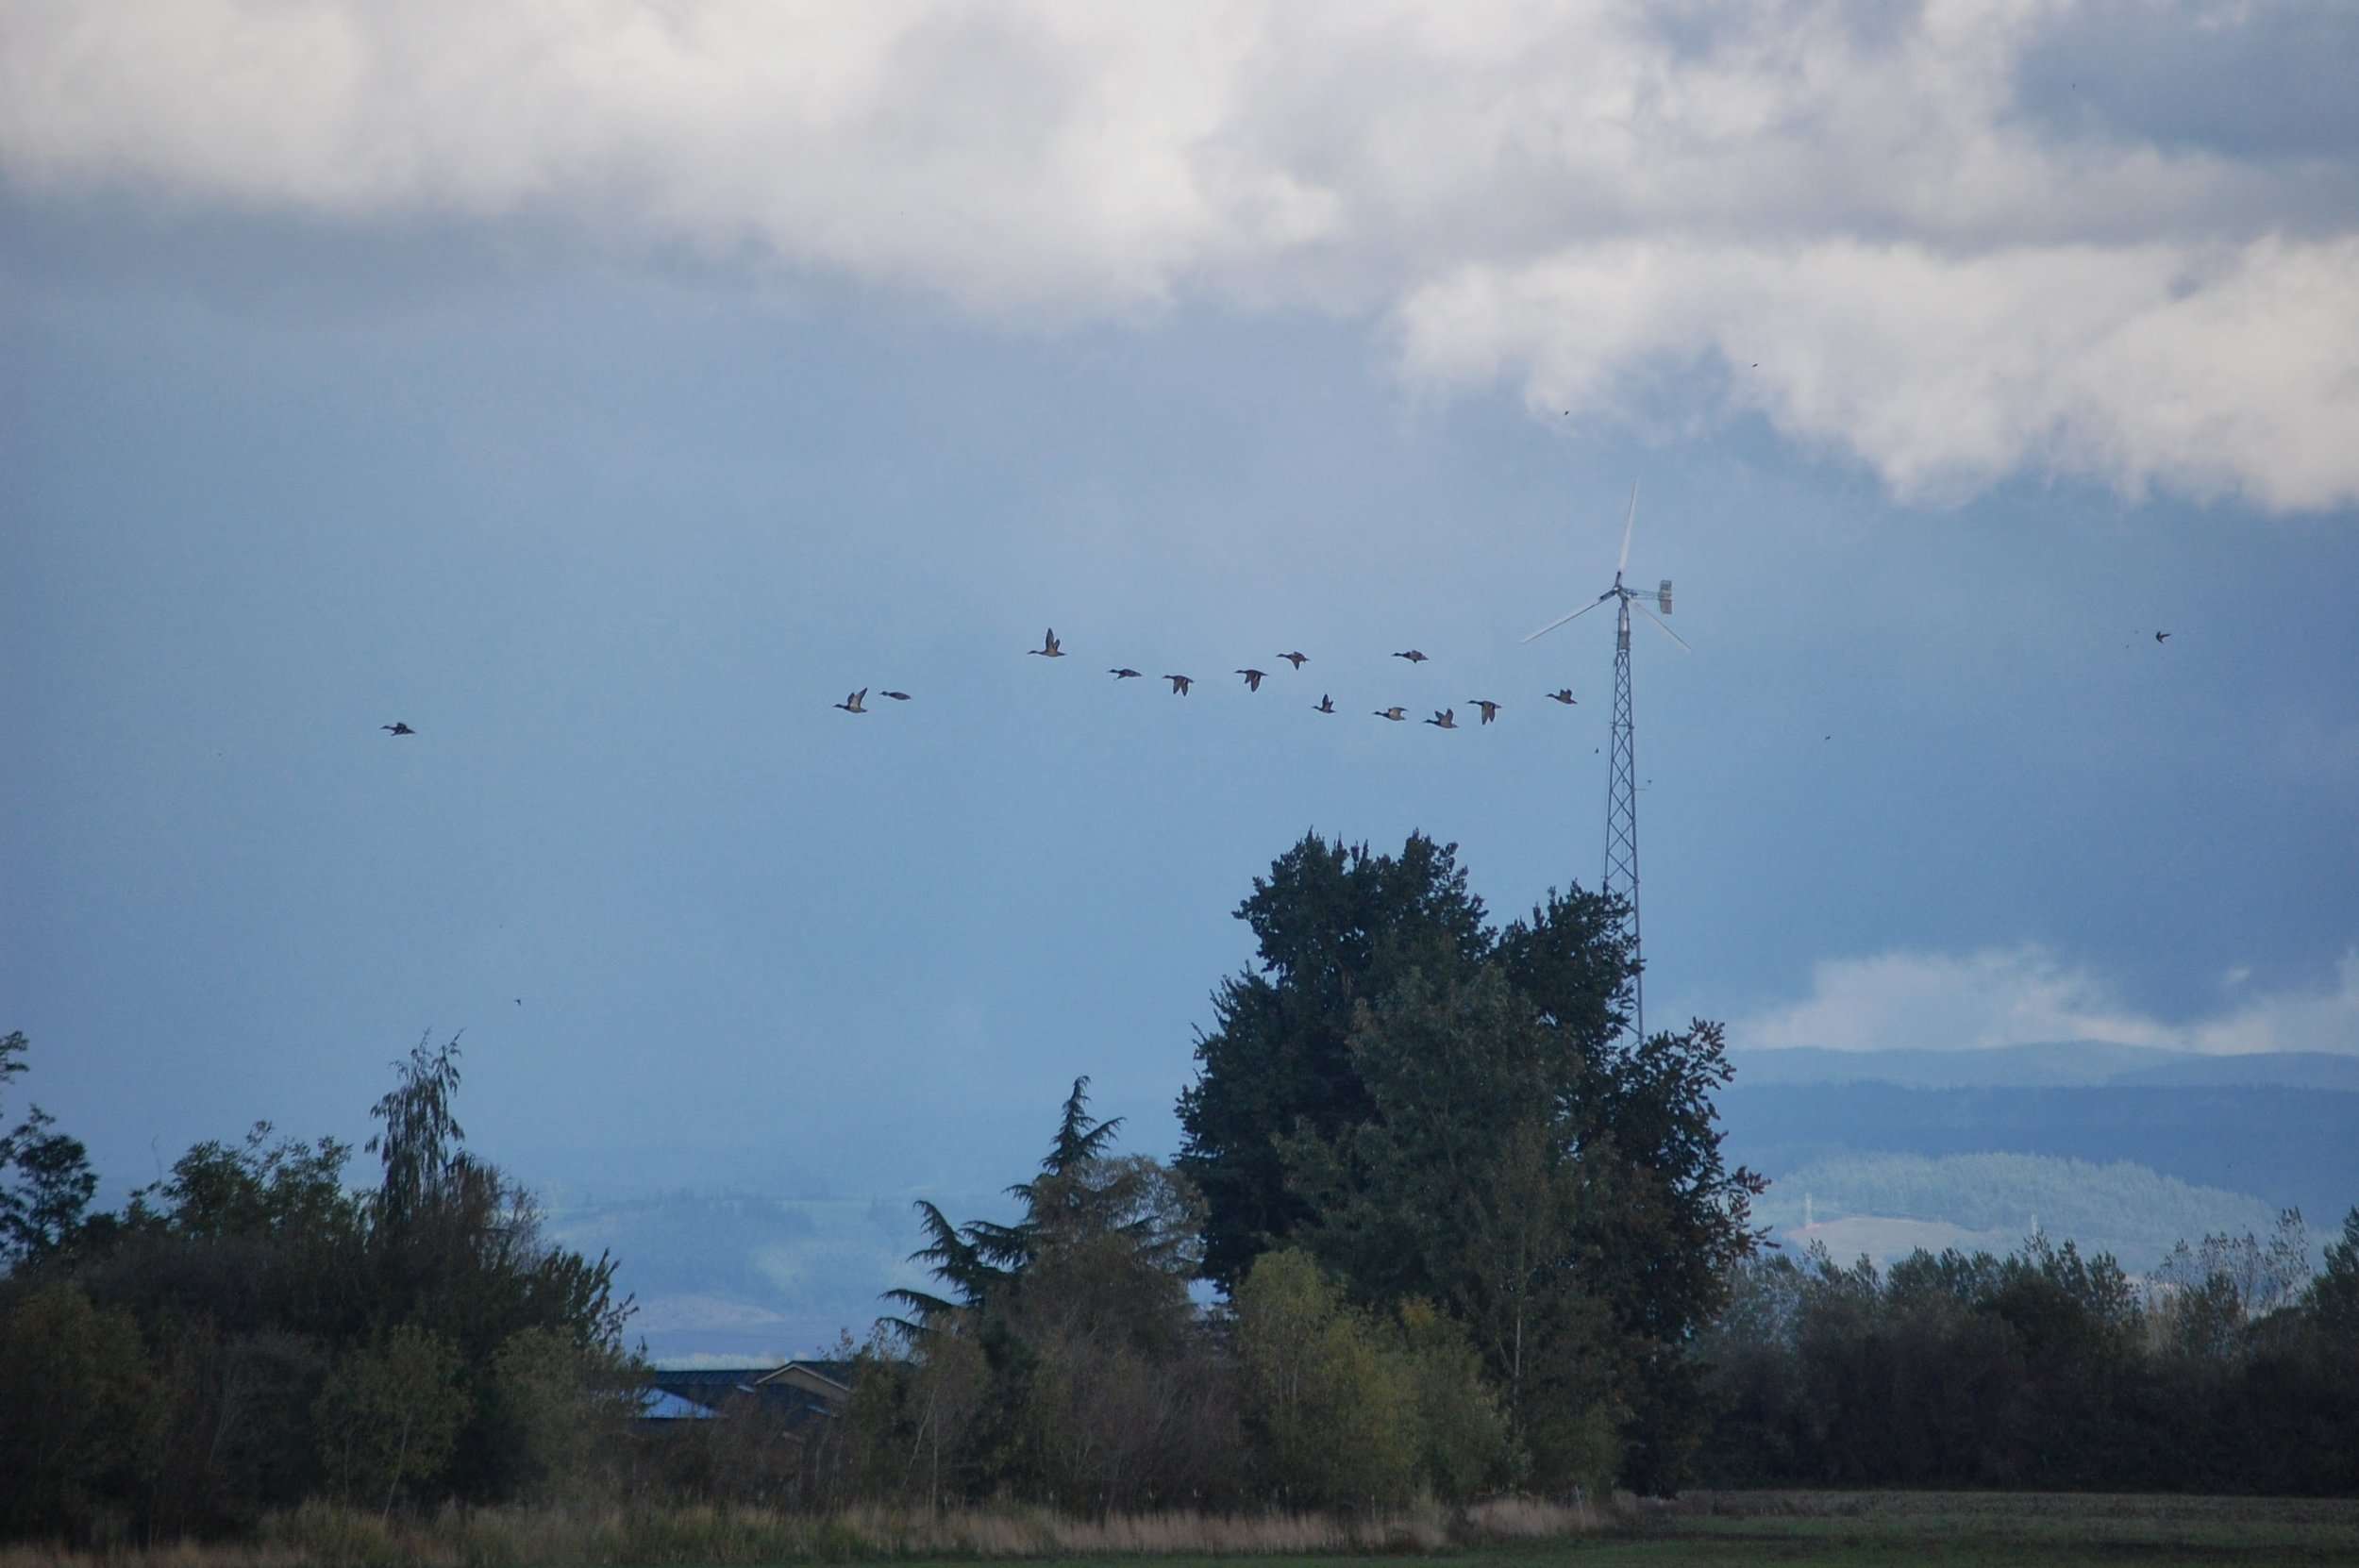 As the year ends, migrating waterfowl return to Santiam Valley Ranch.